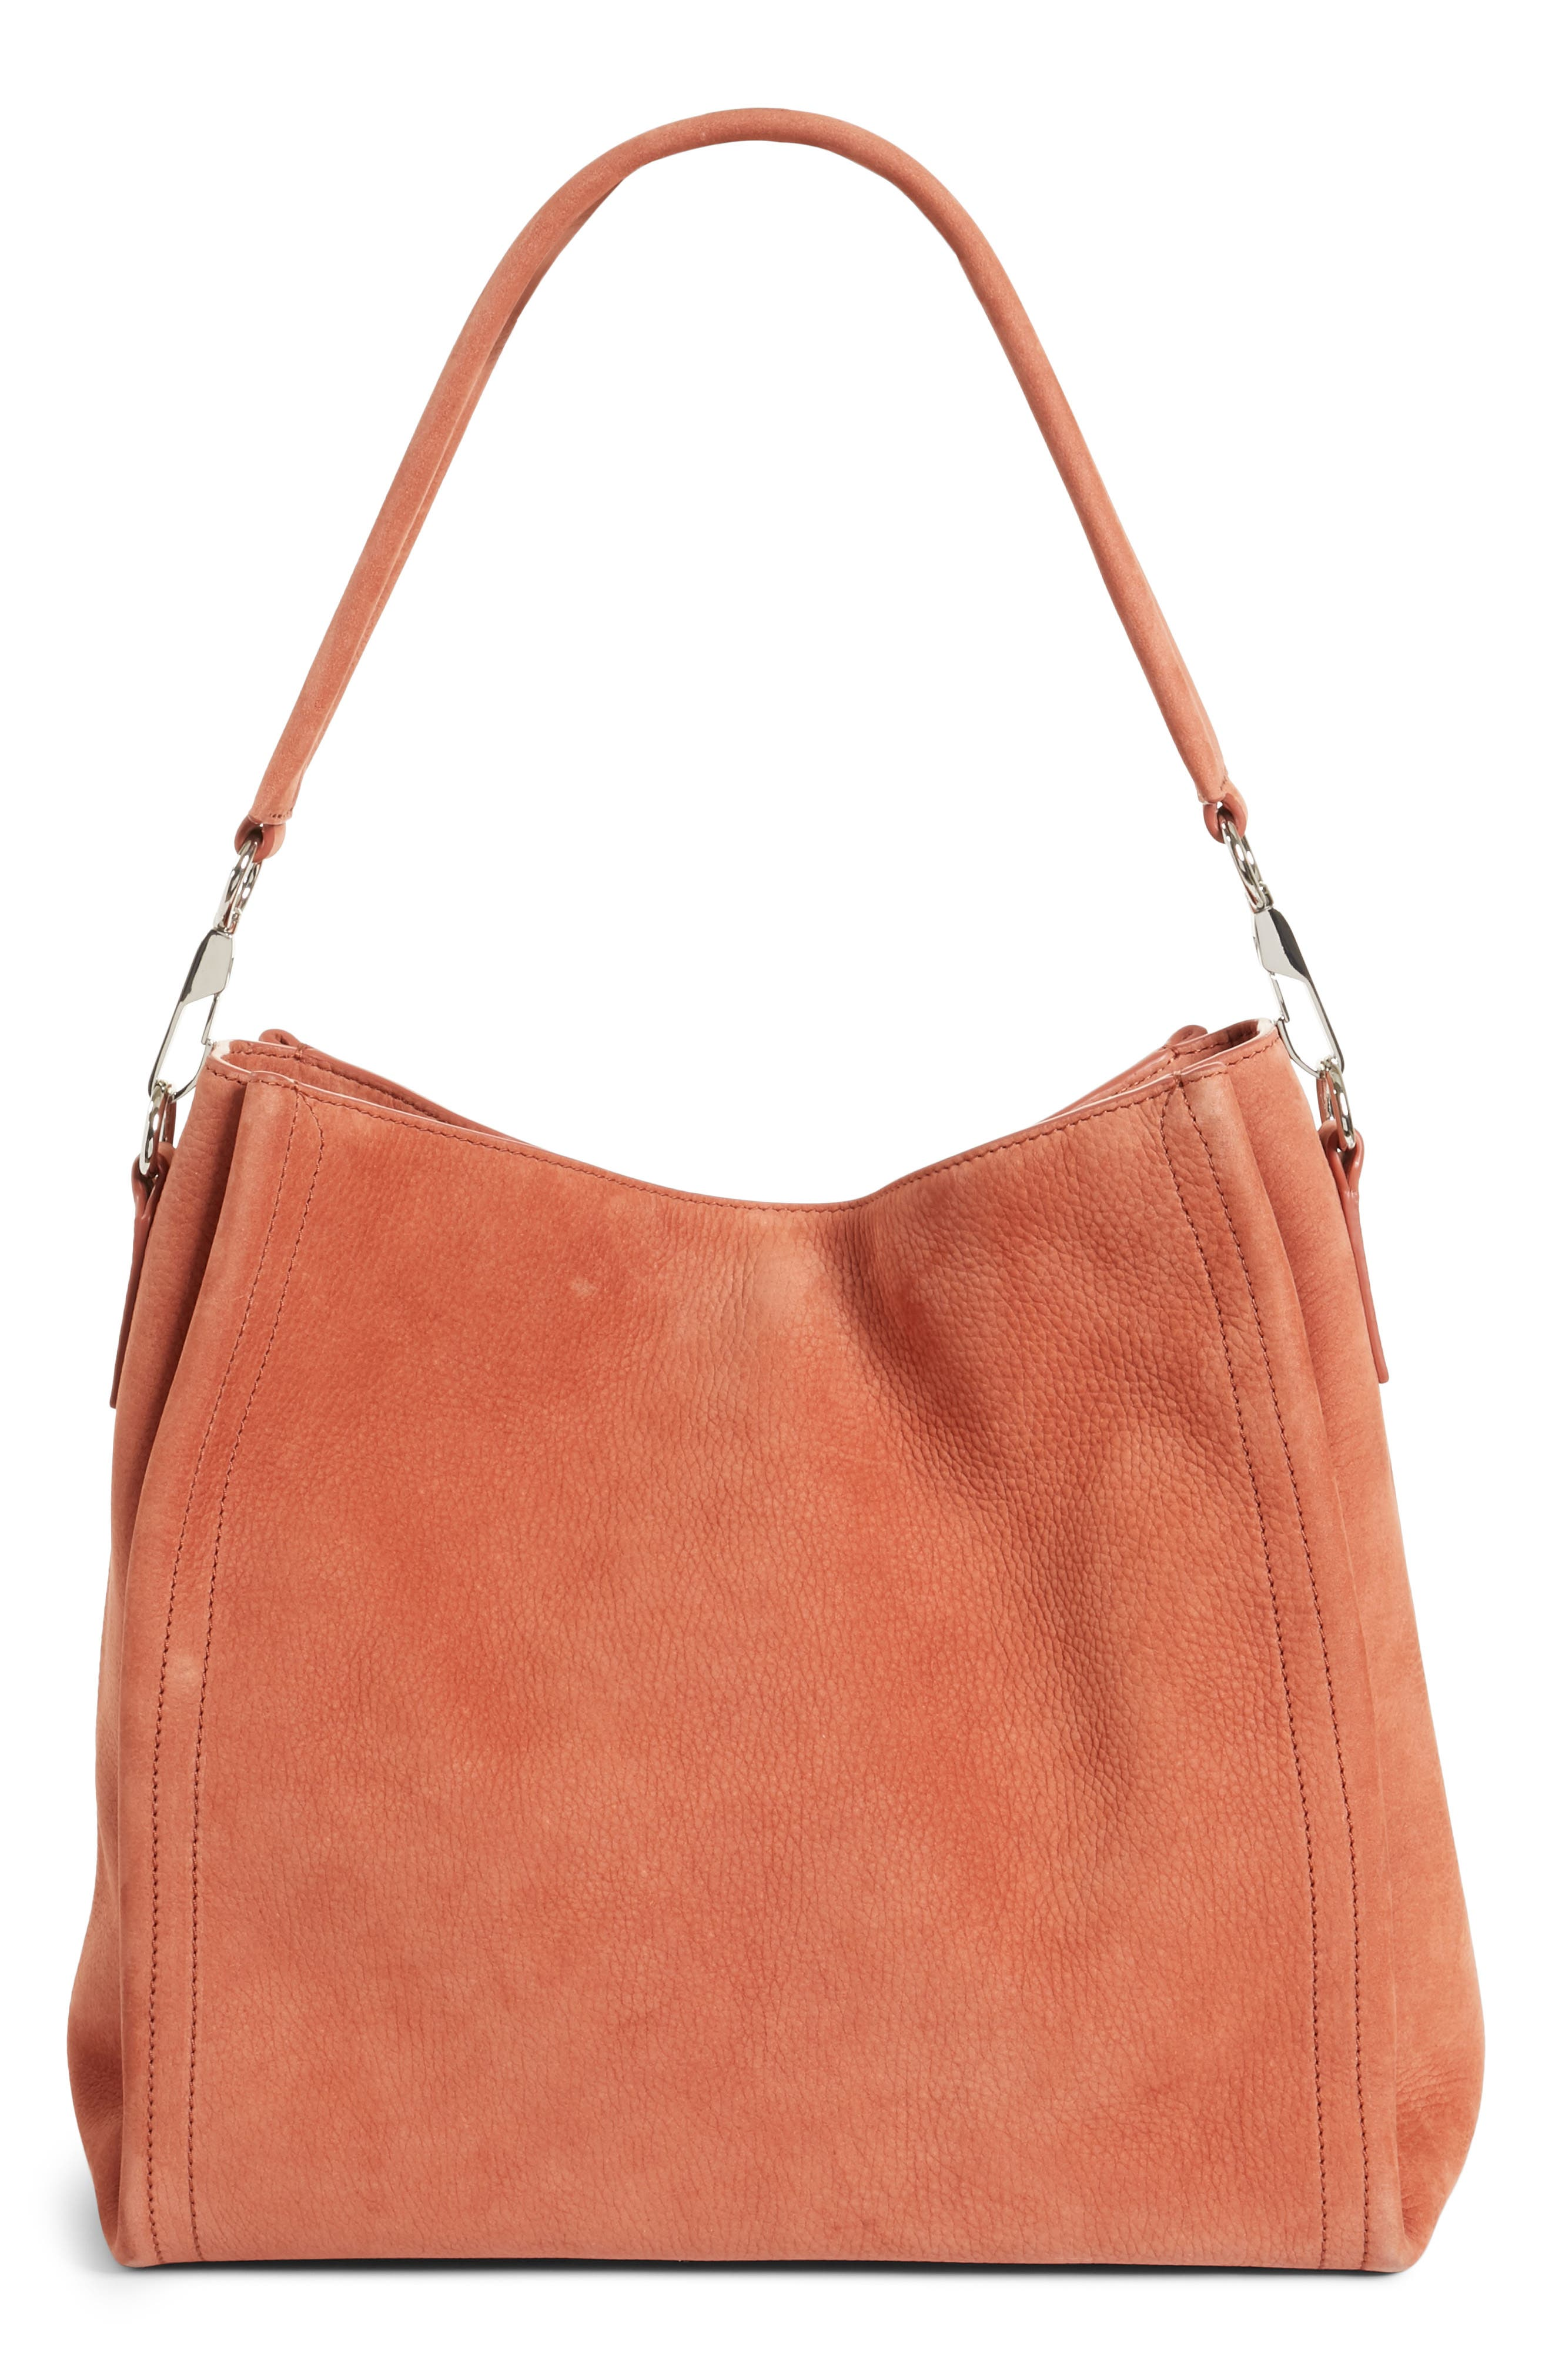 Darcy Pebbled Leather Hobo,                         Main,                         color, 200